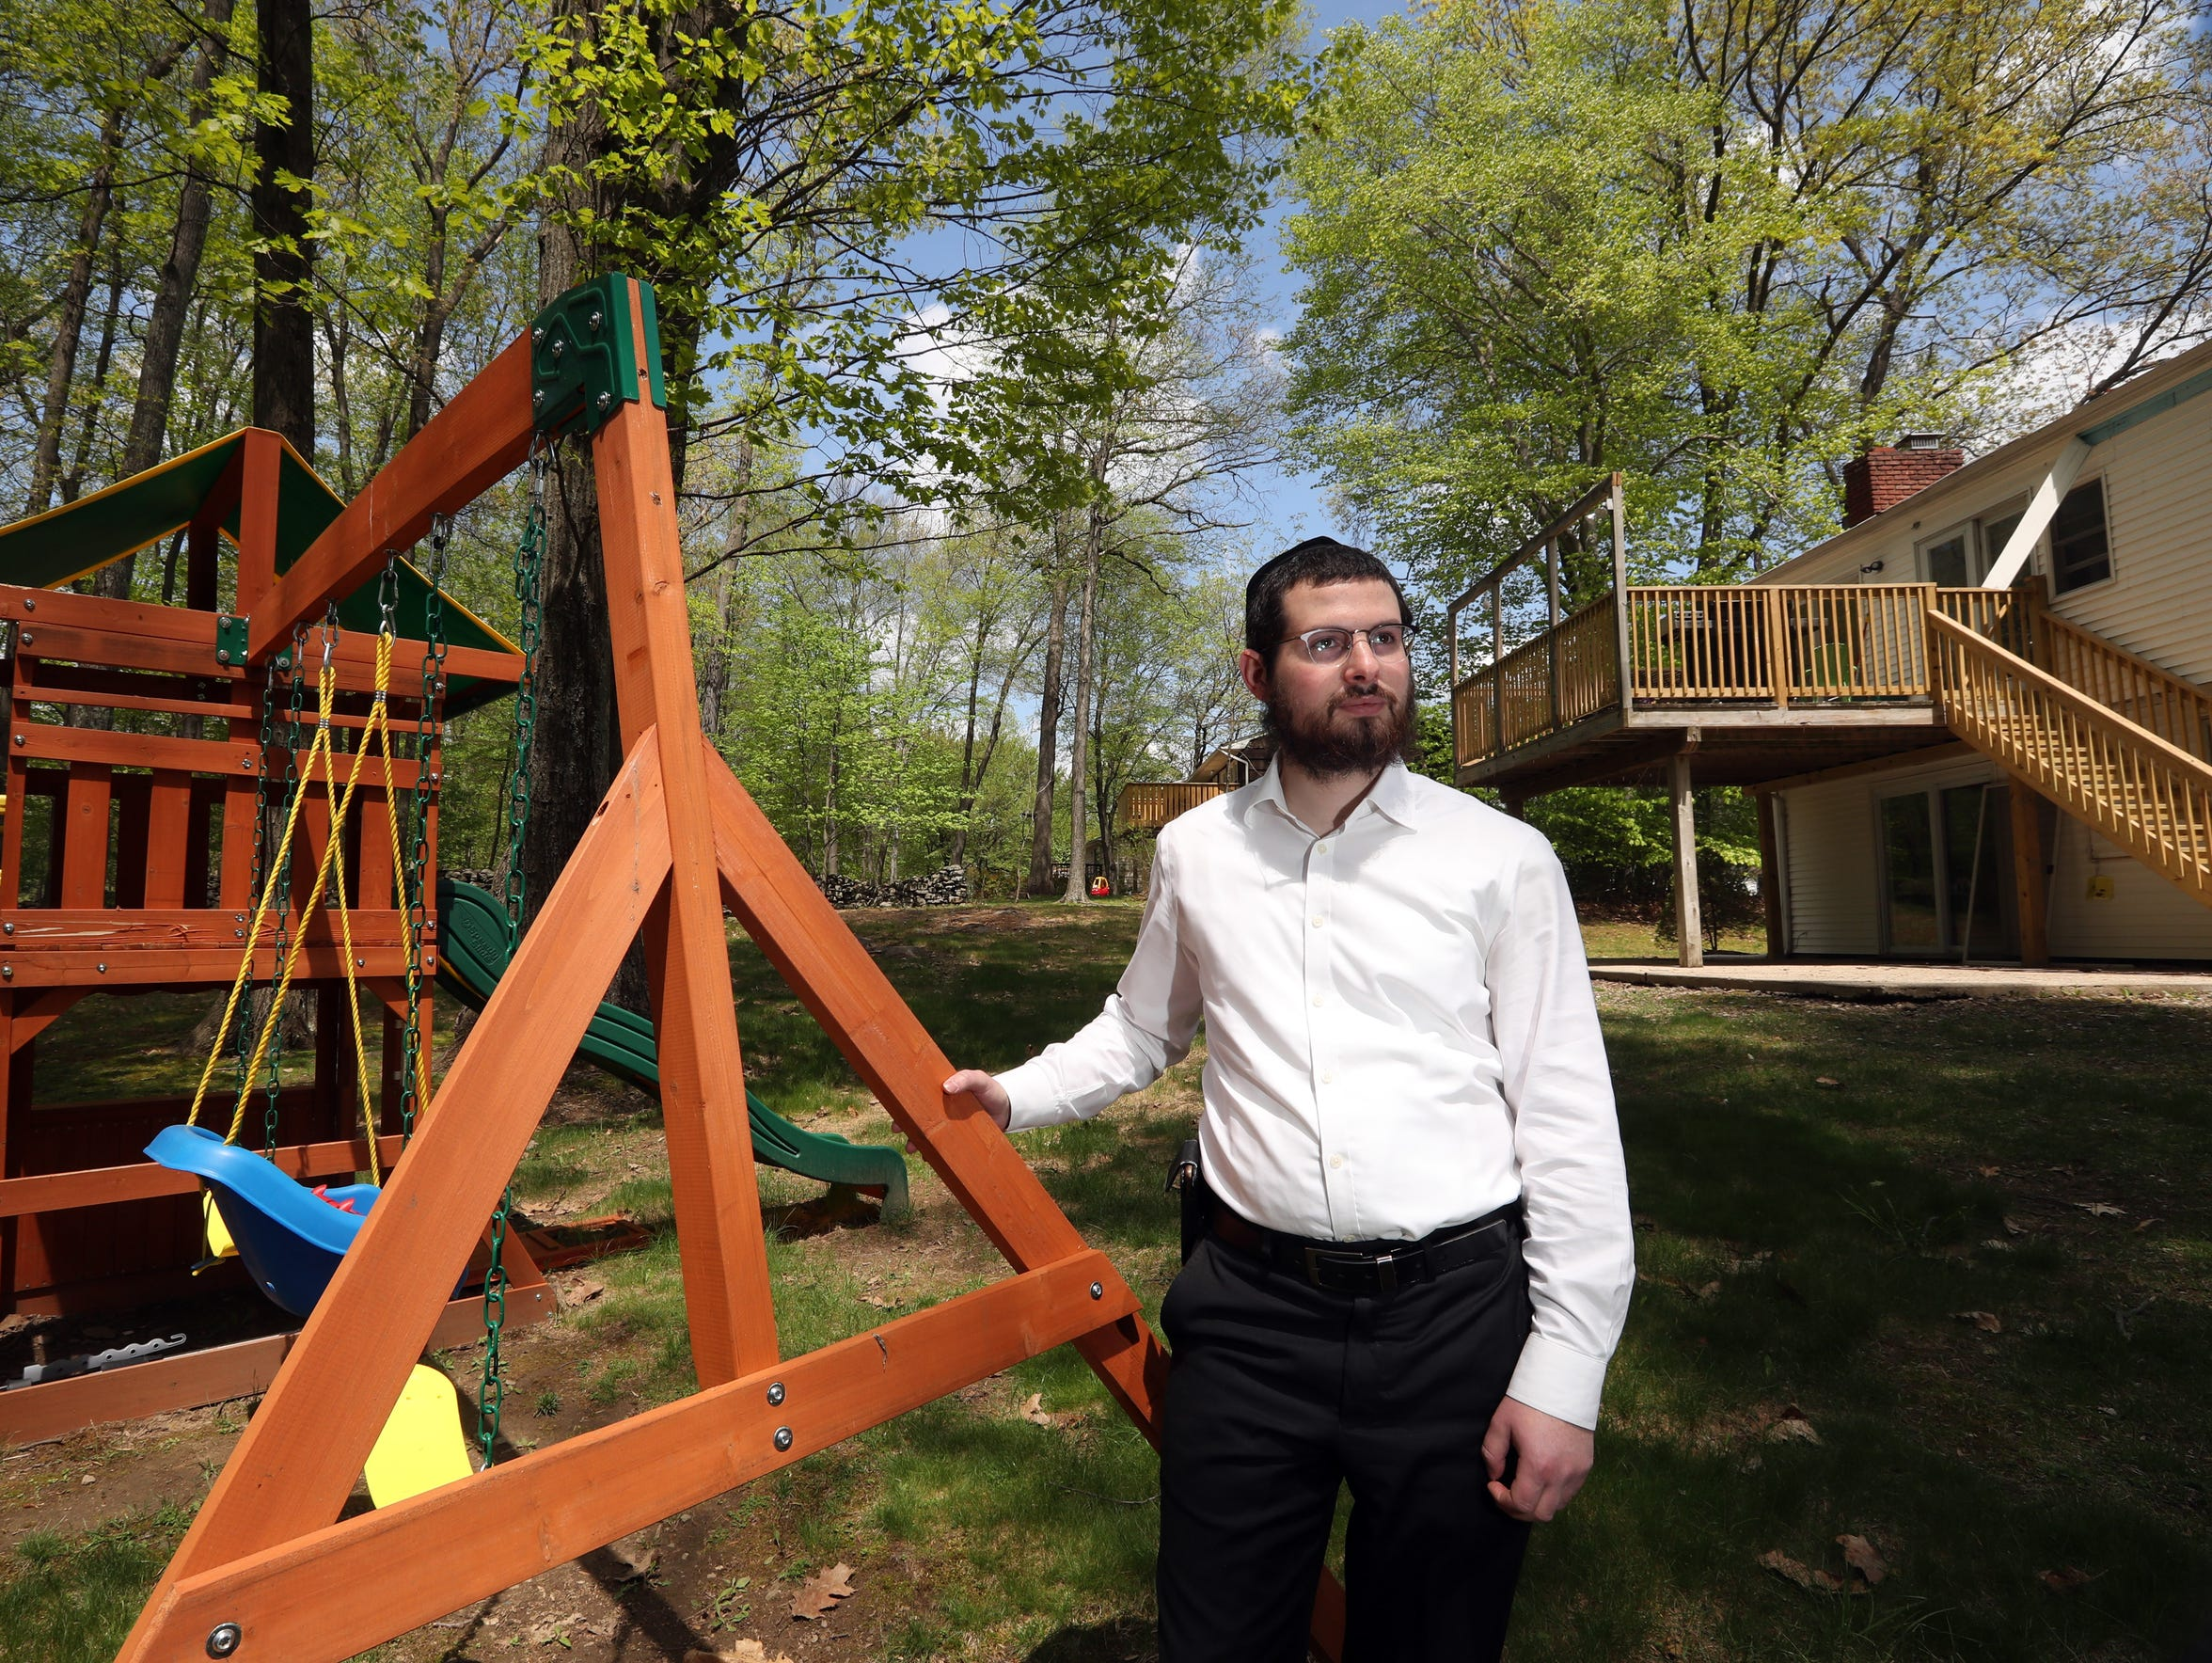 Nathan Unger, 29, stands in the backyard of his home